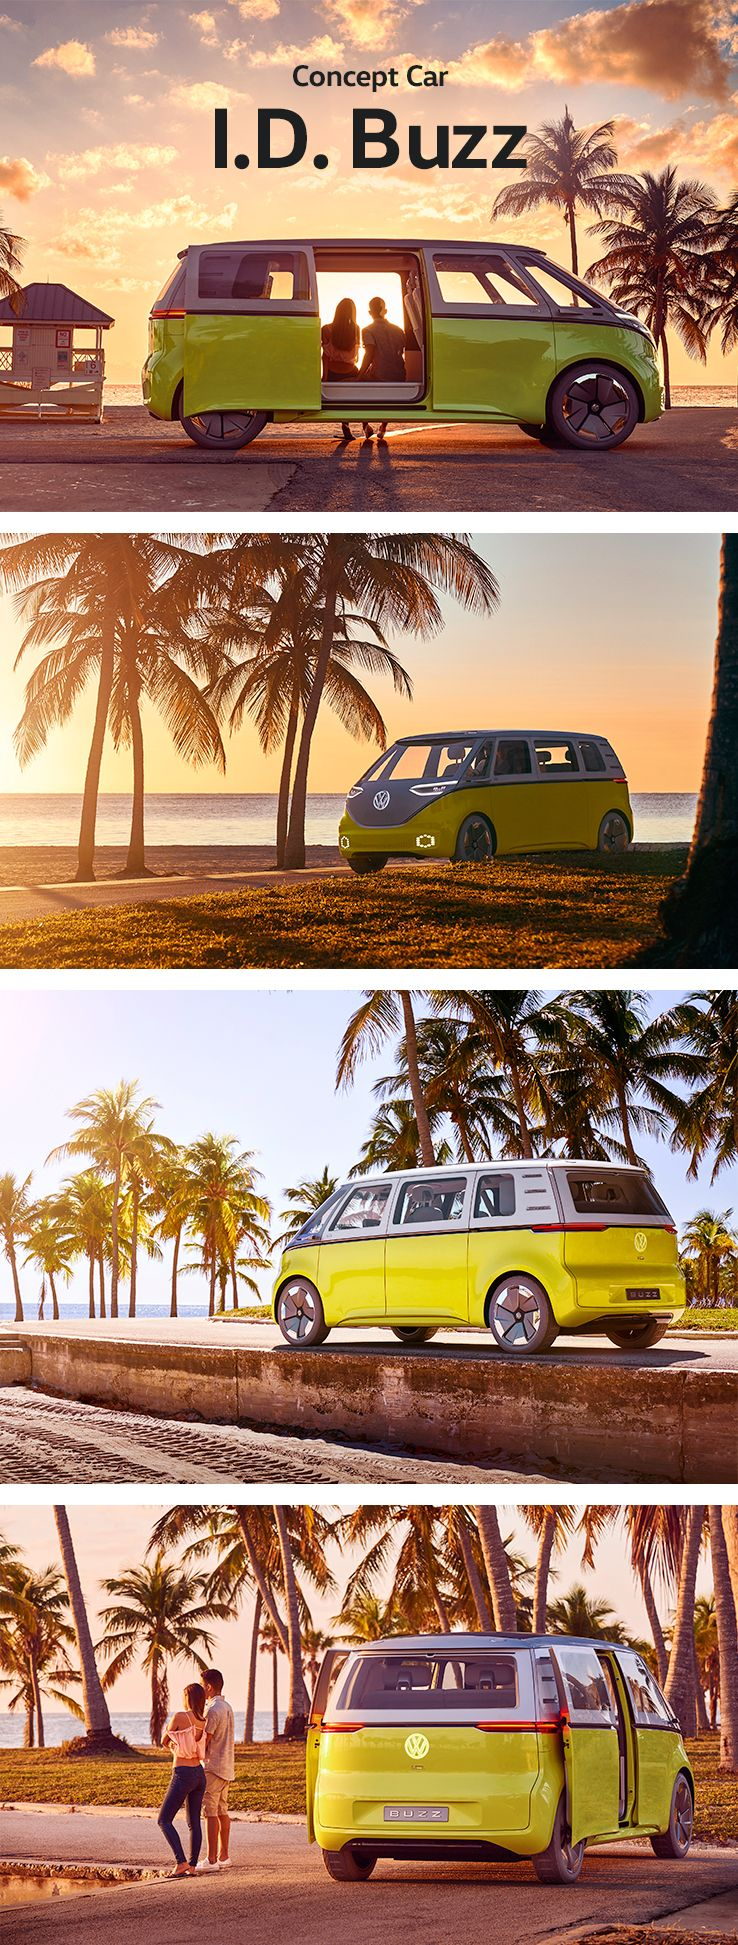 The Volkswagen I.D. Buzz is a next generation microbus: all-electric and fully connected. This concept car based on the new Modular Electric Drive Kit (MEB) offers comfort and plenty of space while the design was inspired by a true classic: The Volkswagen Campervan.